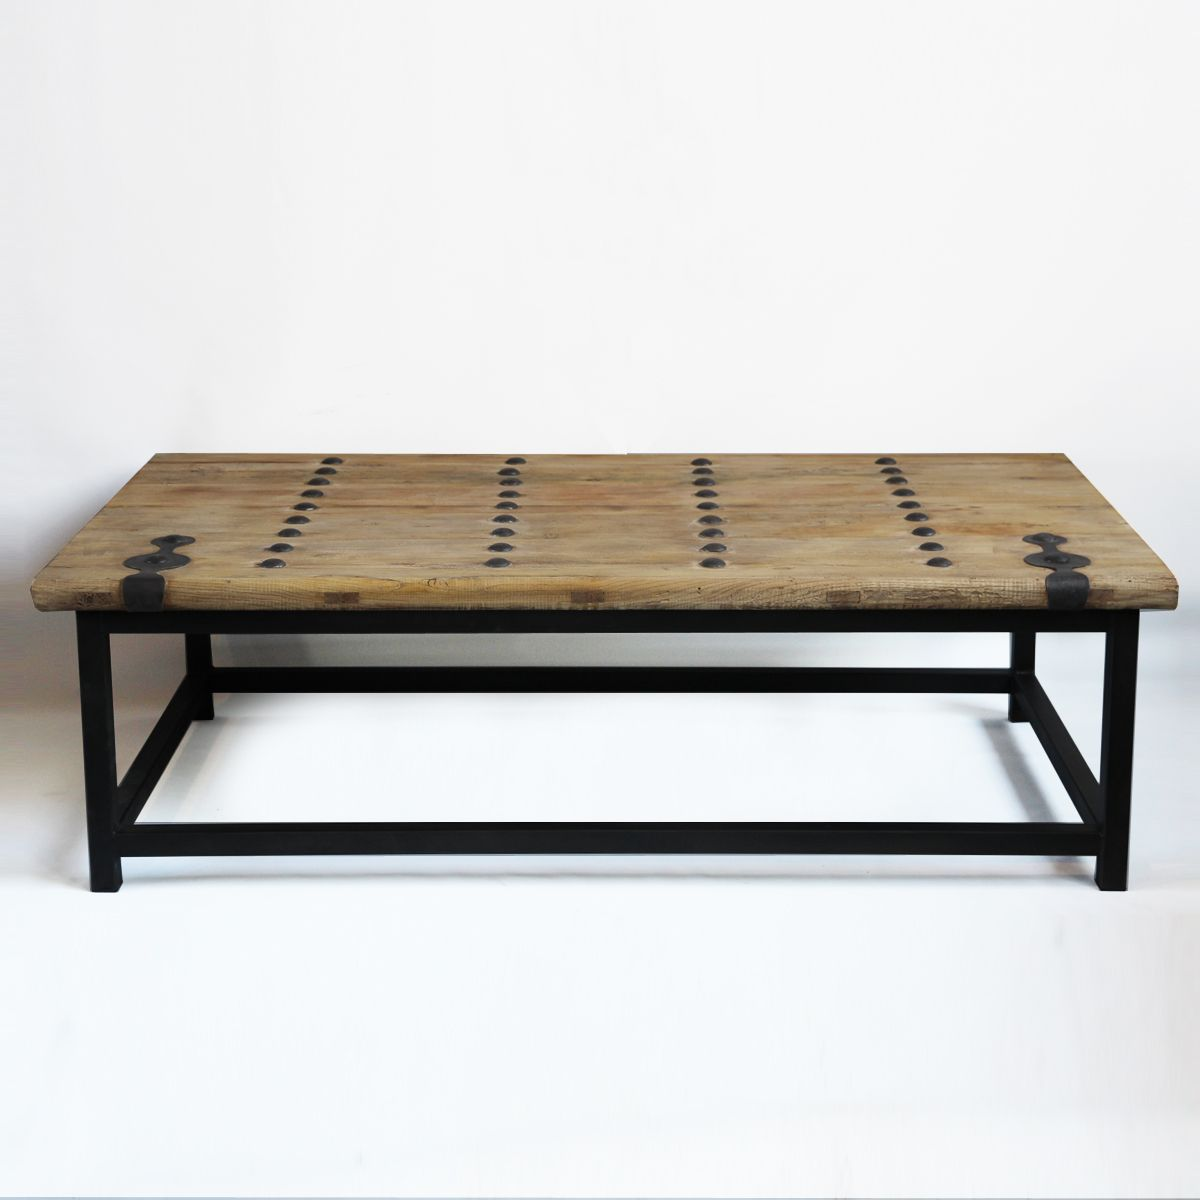 Check Out Our Rustic Coffee Tables At Mix Furniture Old Elm Wood Solid Table With Iron Details And Simple Black Base